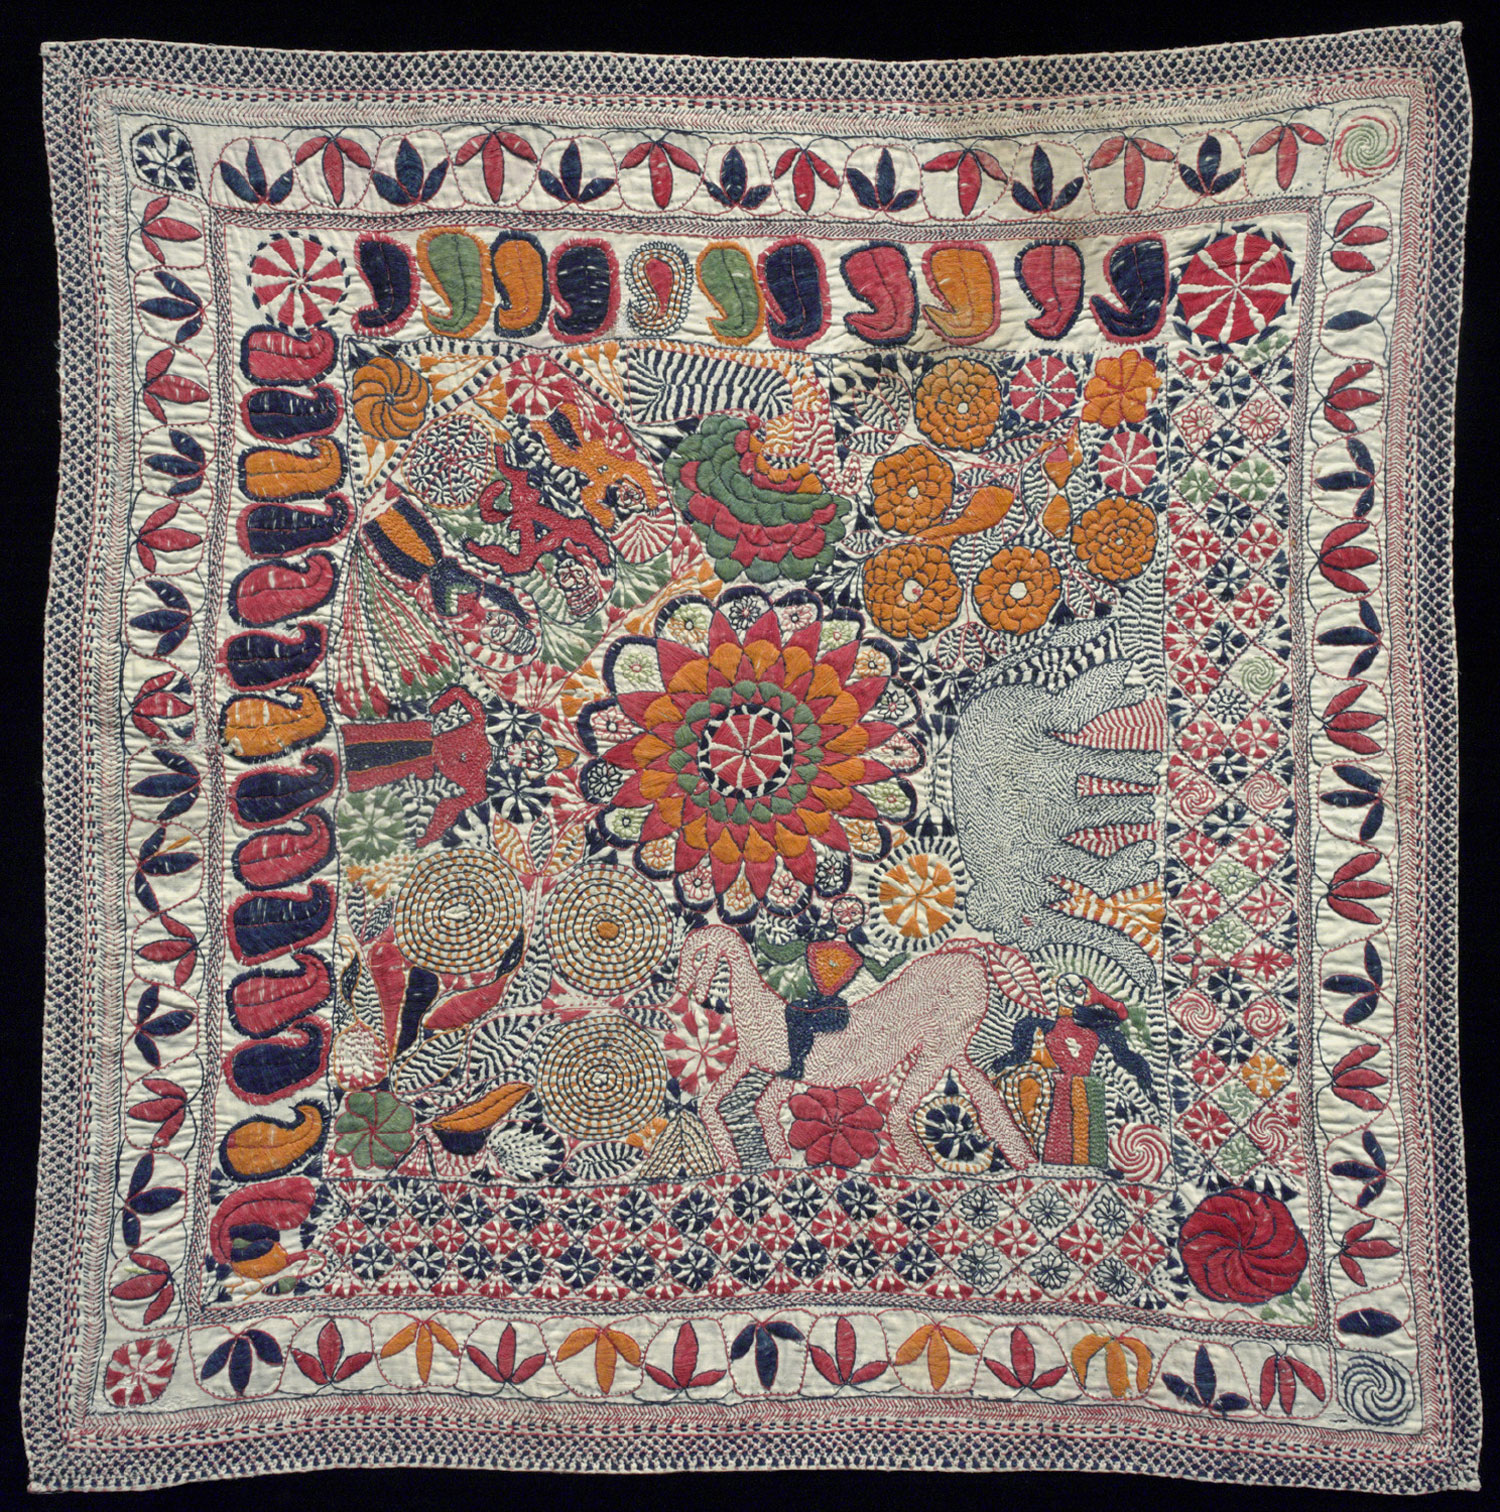 Made in Faridpur District, Bangladesh or West Bengal, India;Second half of 19th century